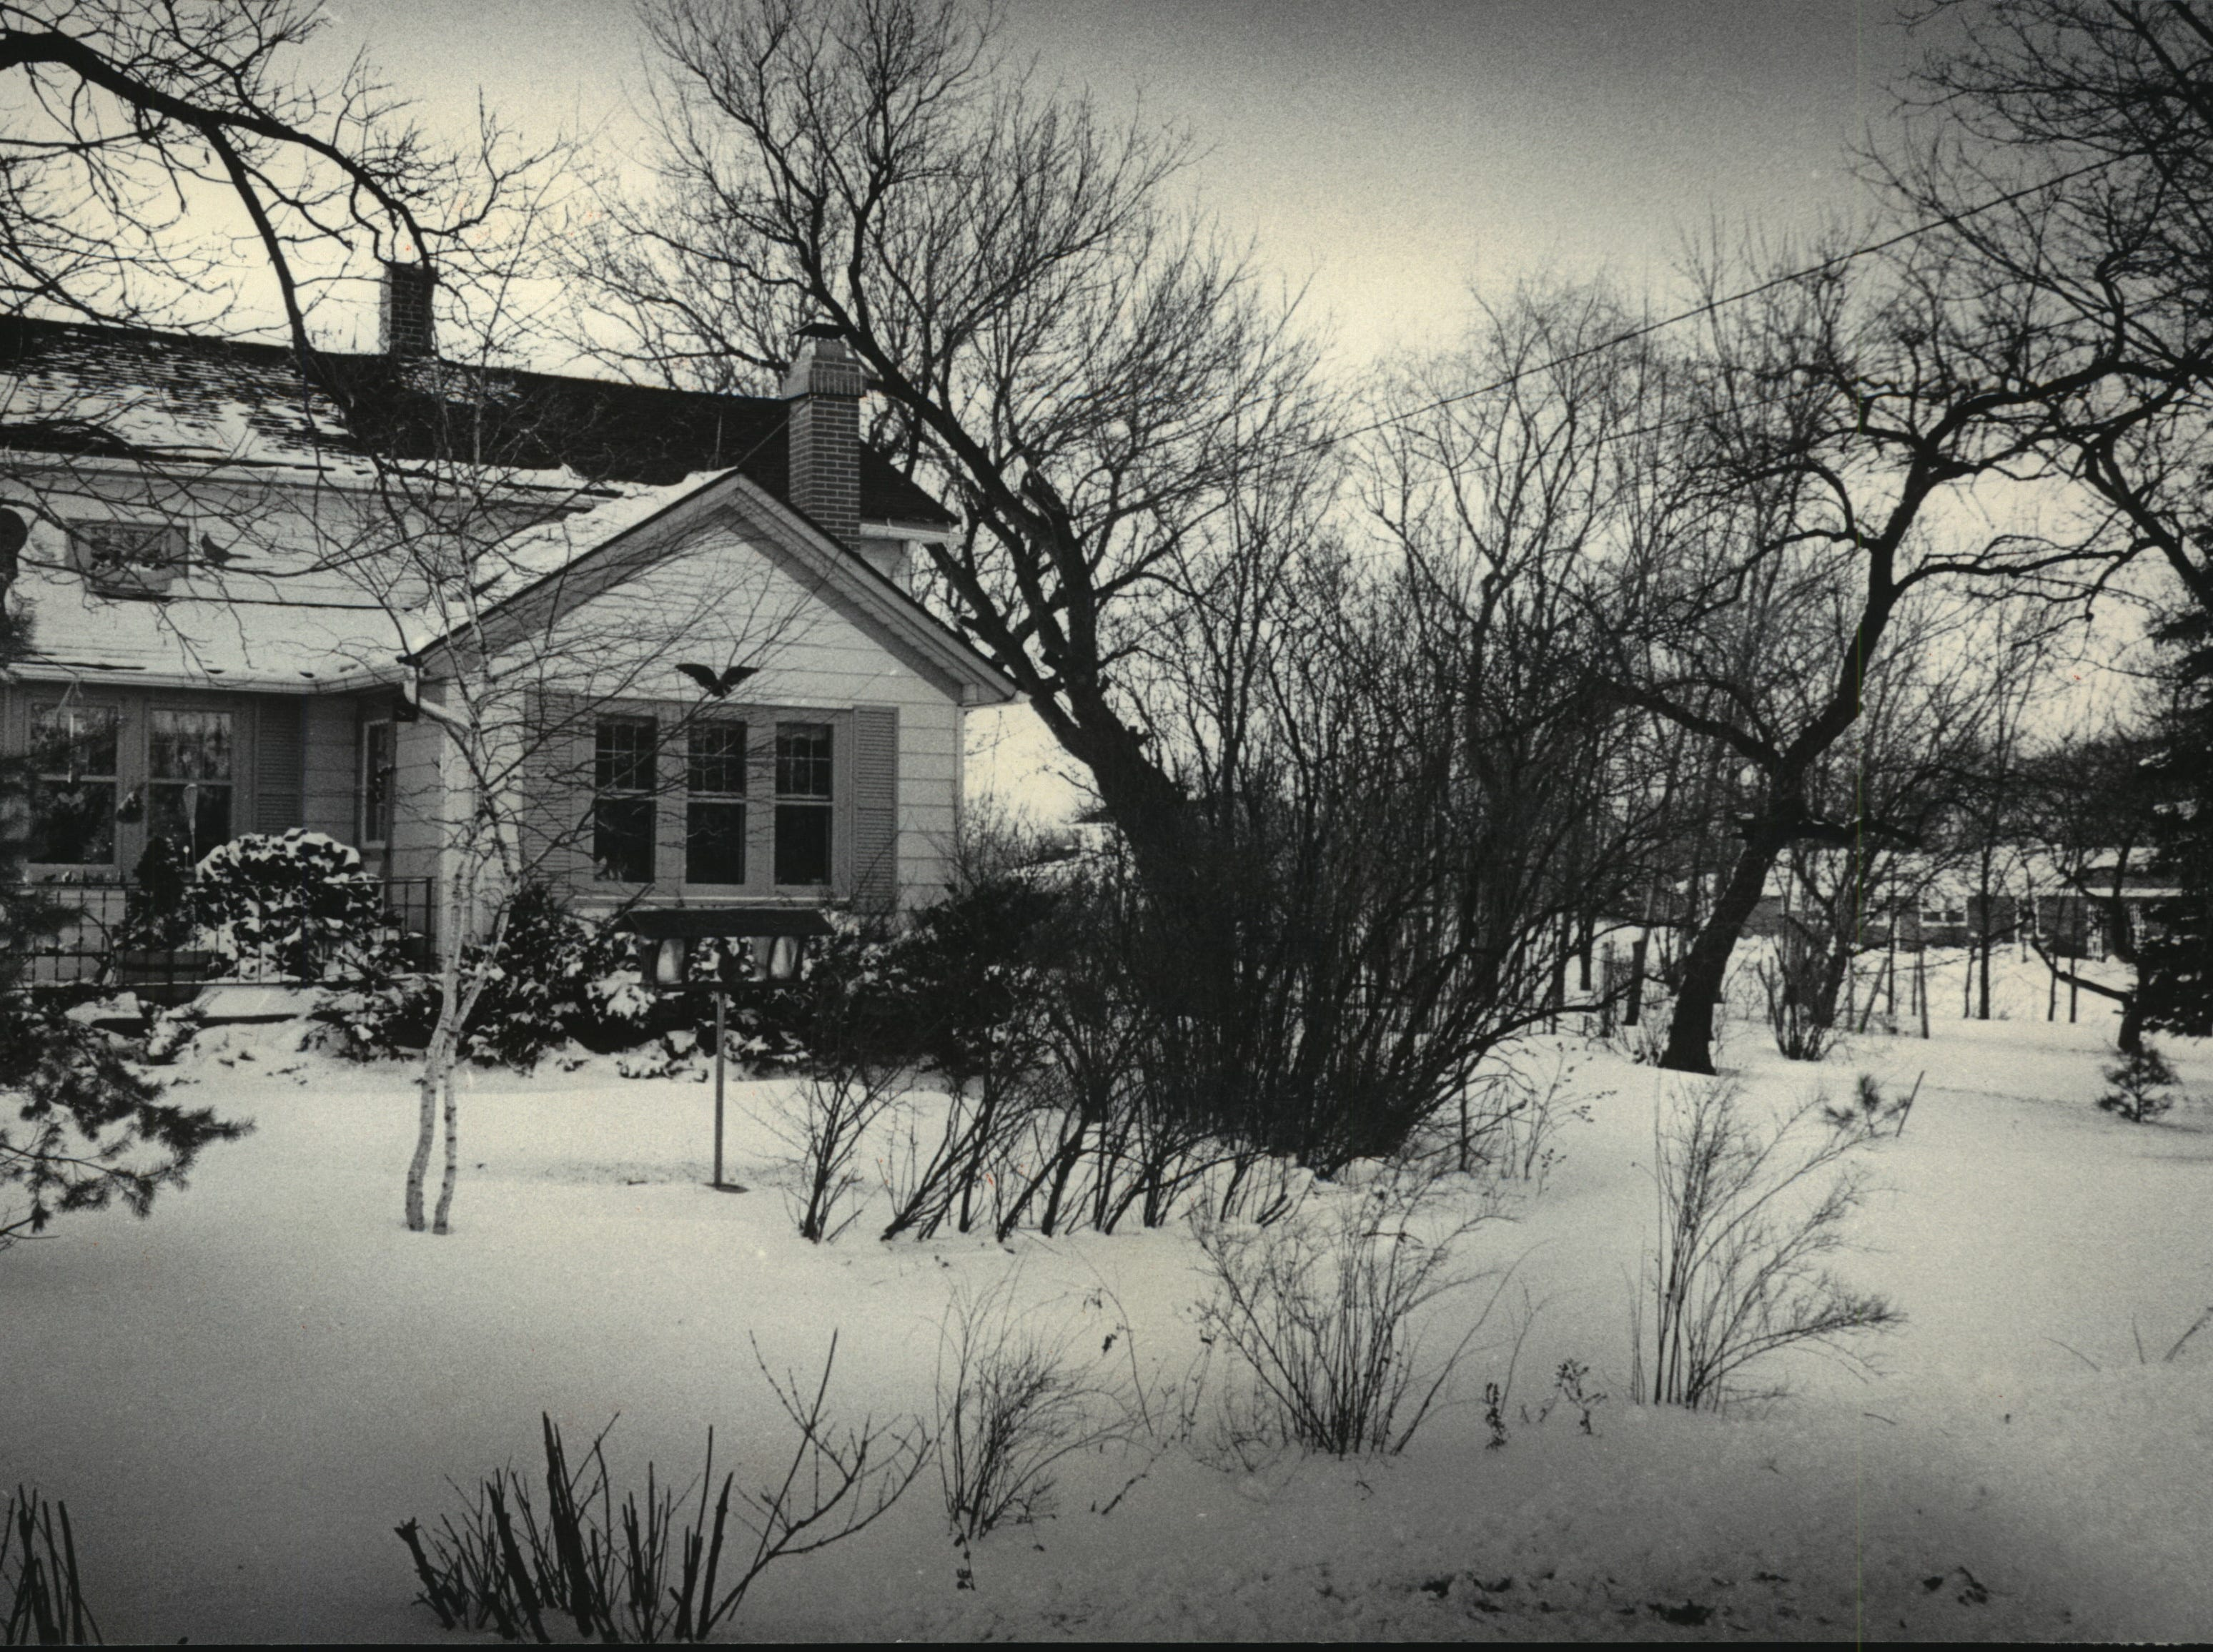 Edward Steichen, his sister Lilian Steichen and her husband, Carl Sandburg, lived in this house at W156-N6767 Pilgrim Road, Menomonee Falls.  The mulberry tree that Sandburg wrote about is at the far right.